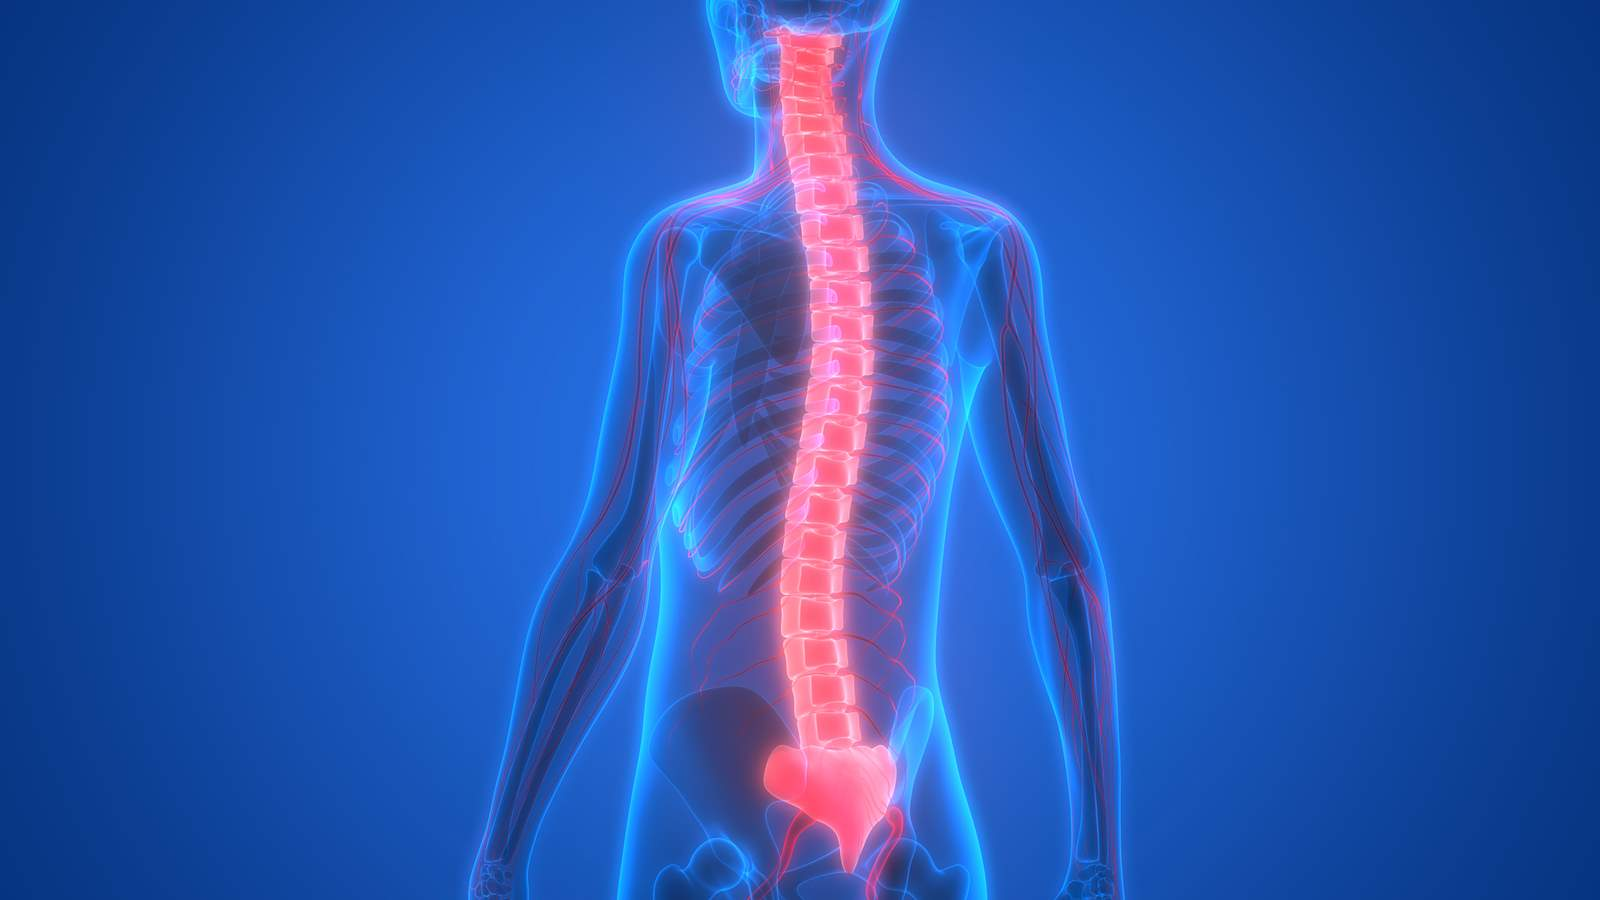 The Ongoing Costs Of Spinal Cord Injuries